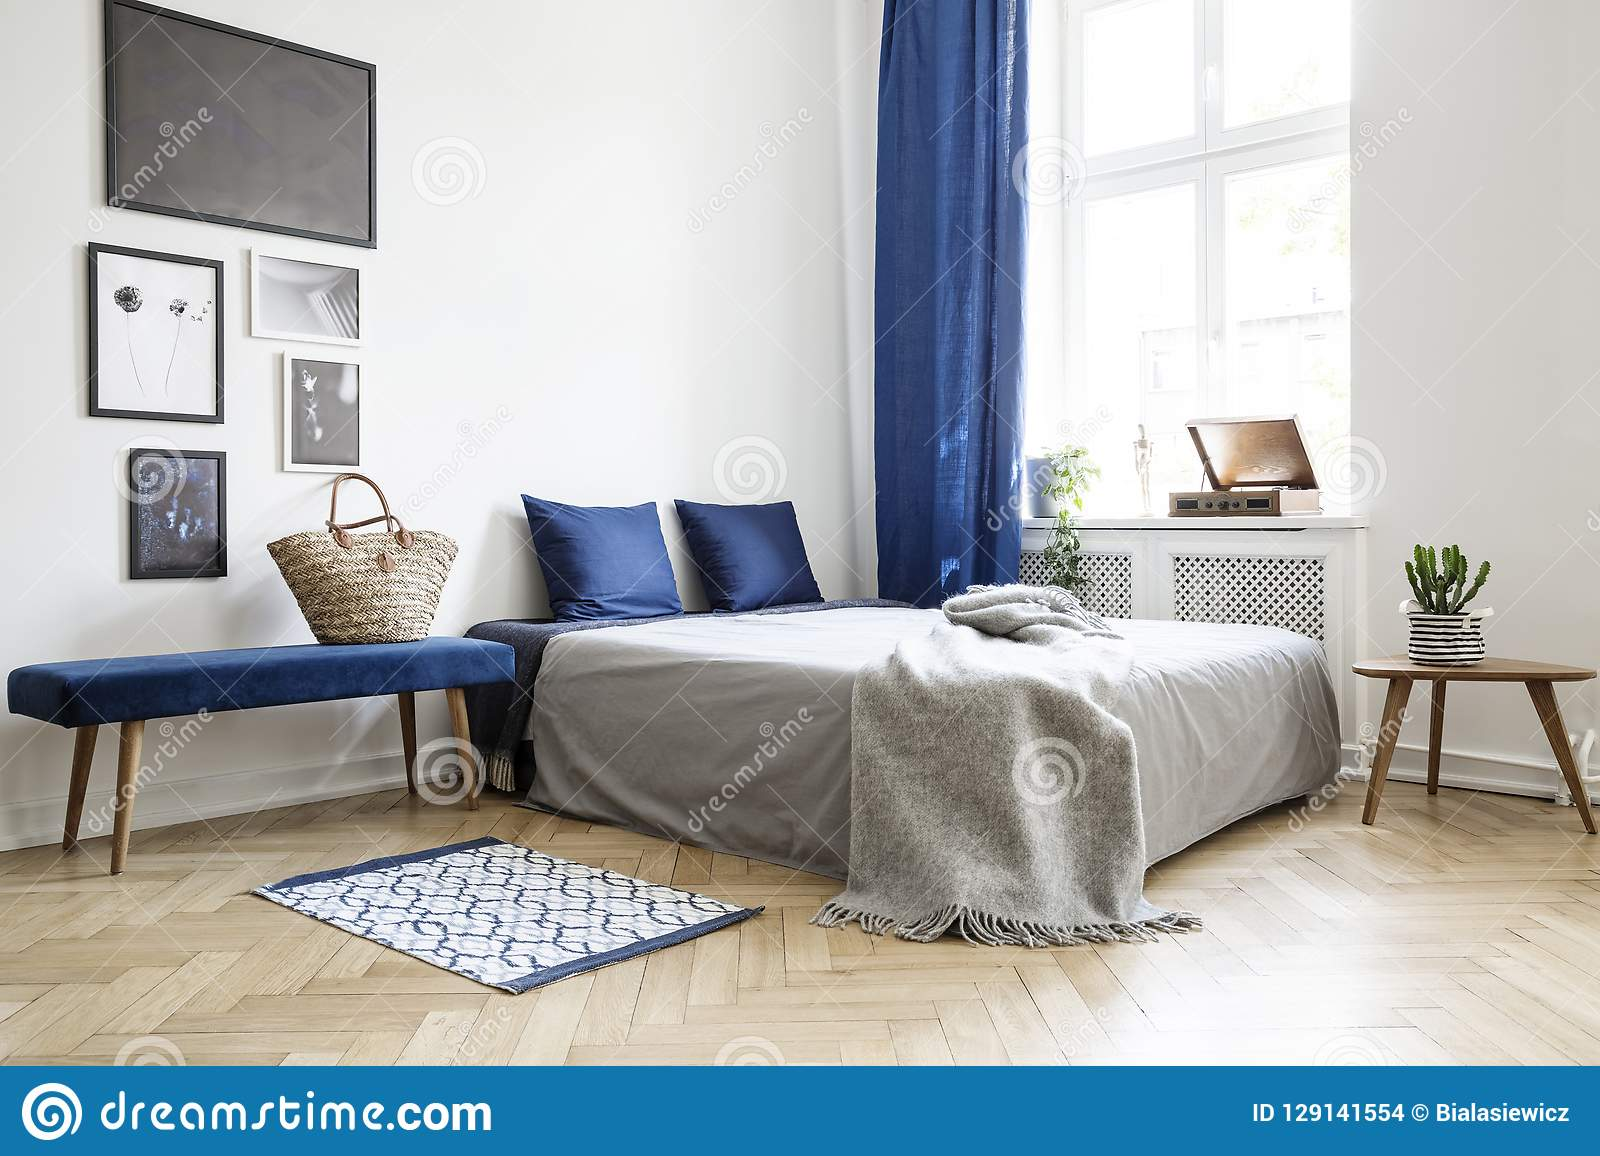 Bedroom Design In Modern Apartment. Bed With Dark Blue Pillows And ...